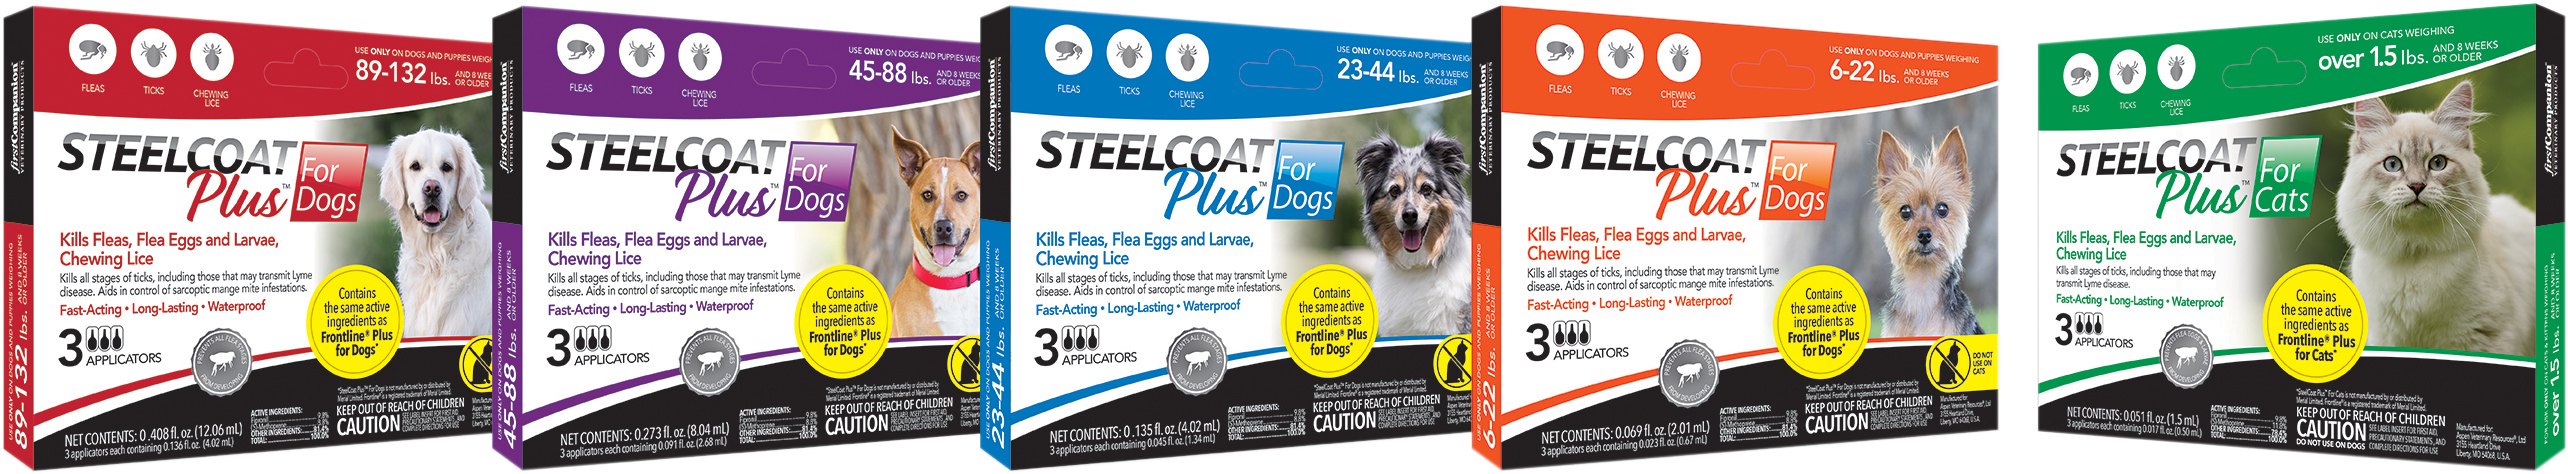 Steelcoat Flea and Tick protection for dogs and cats